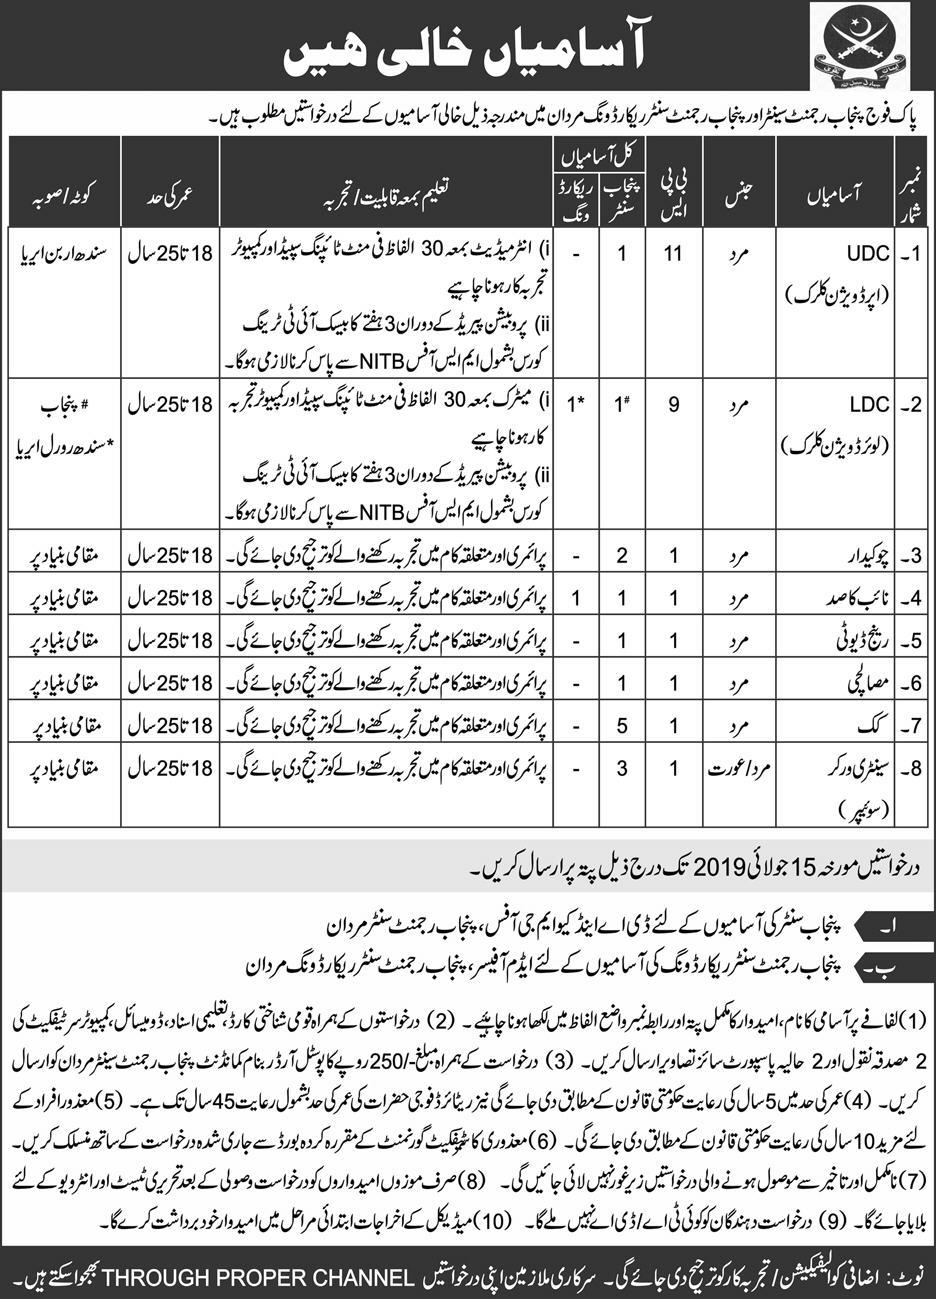 Pakistan Army Civilian New Jobs 2019,pakistan army new jobs 2019,pak army jobs,paf jobs 2019,pakistan army civilian jobs,pakistan army latest jobs 2019,pakistan army civil mess waiter jobs 2019,pak army civilians jobs 2019,pakistan army jobs 2019,pakistan new govt jobs 2019,army new jobs 2019,join paf as civilian 2019,pak air force jobs 2019,pakistan air force jobs,pak army civilian job 2019